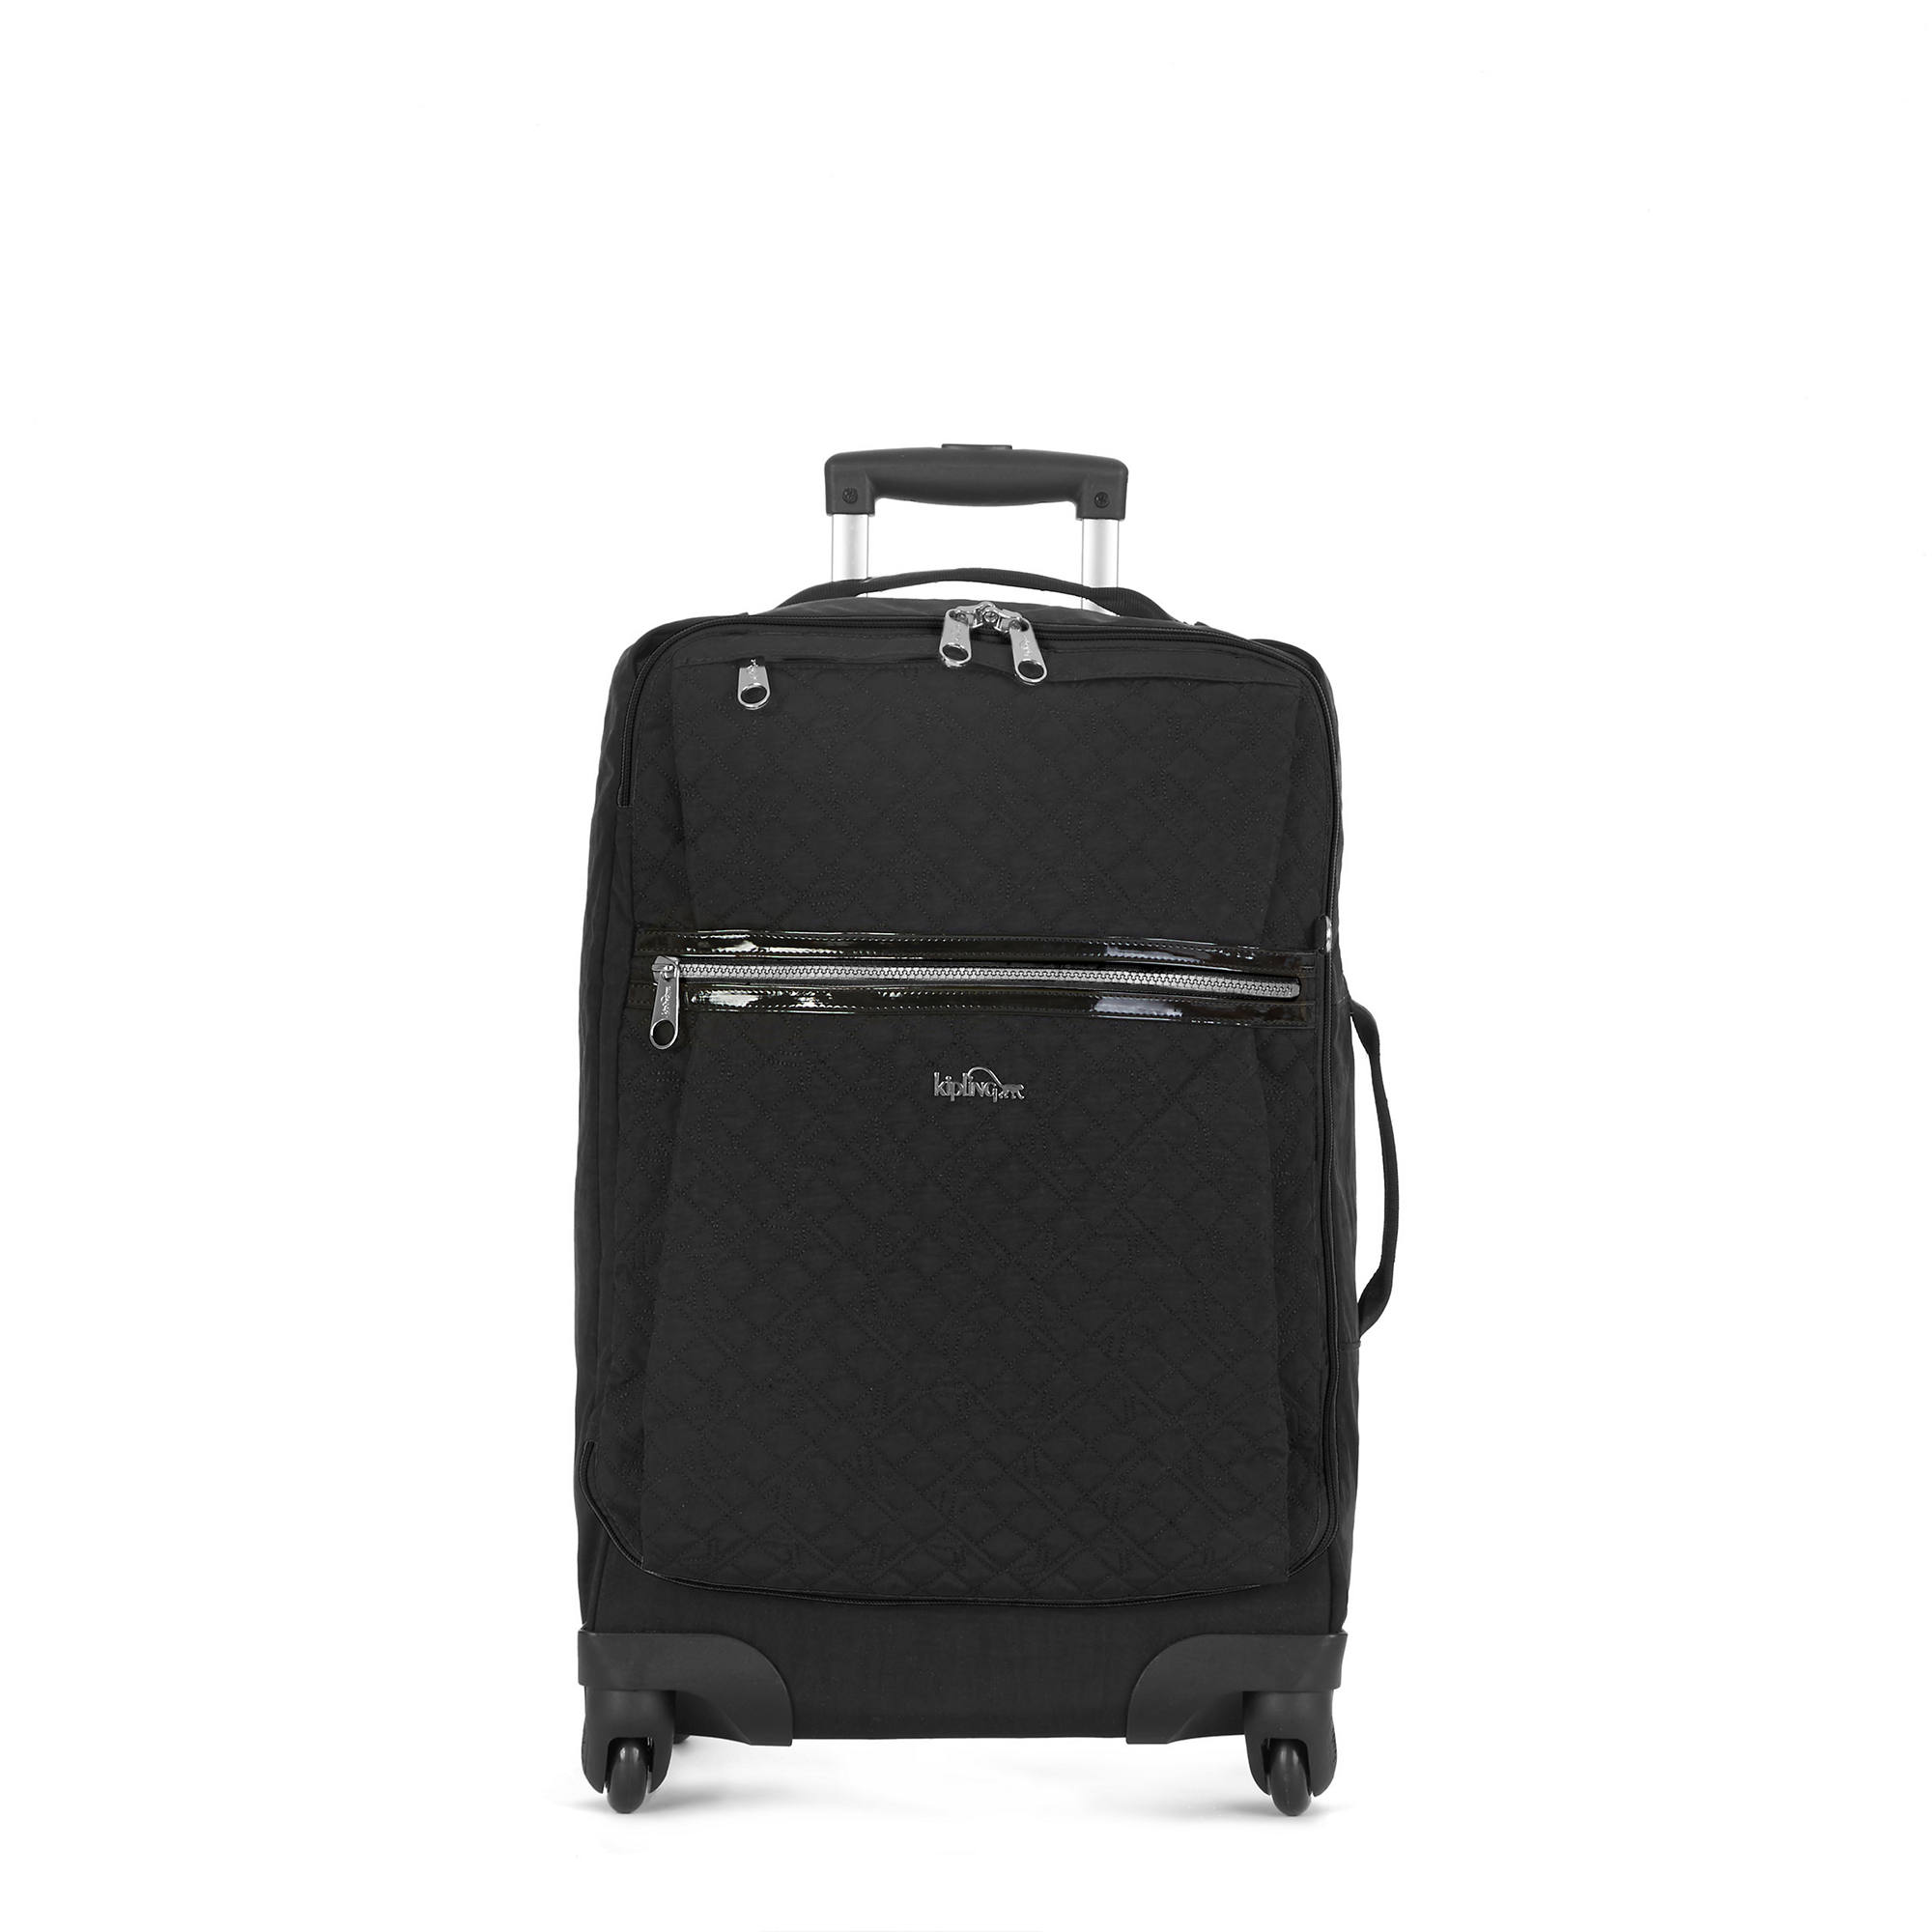 164785ff22 Darcey Small Carry-On Rolling Luggage